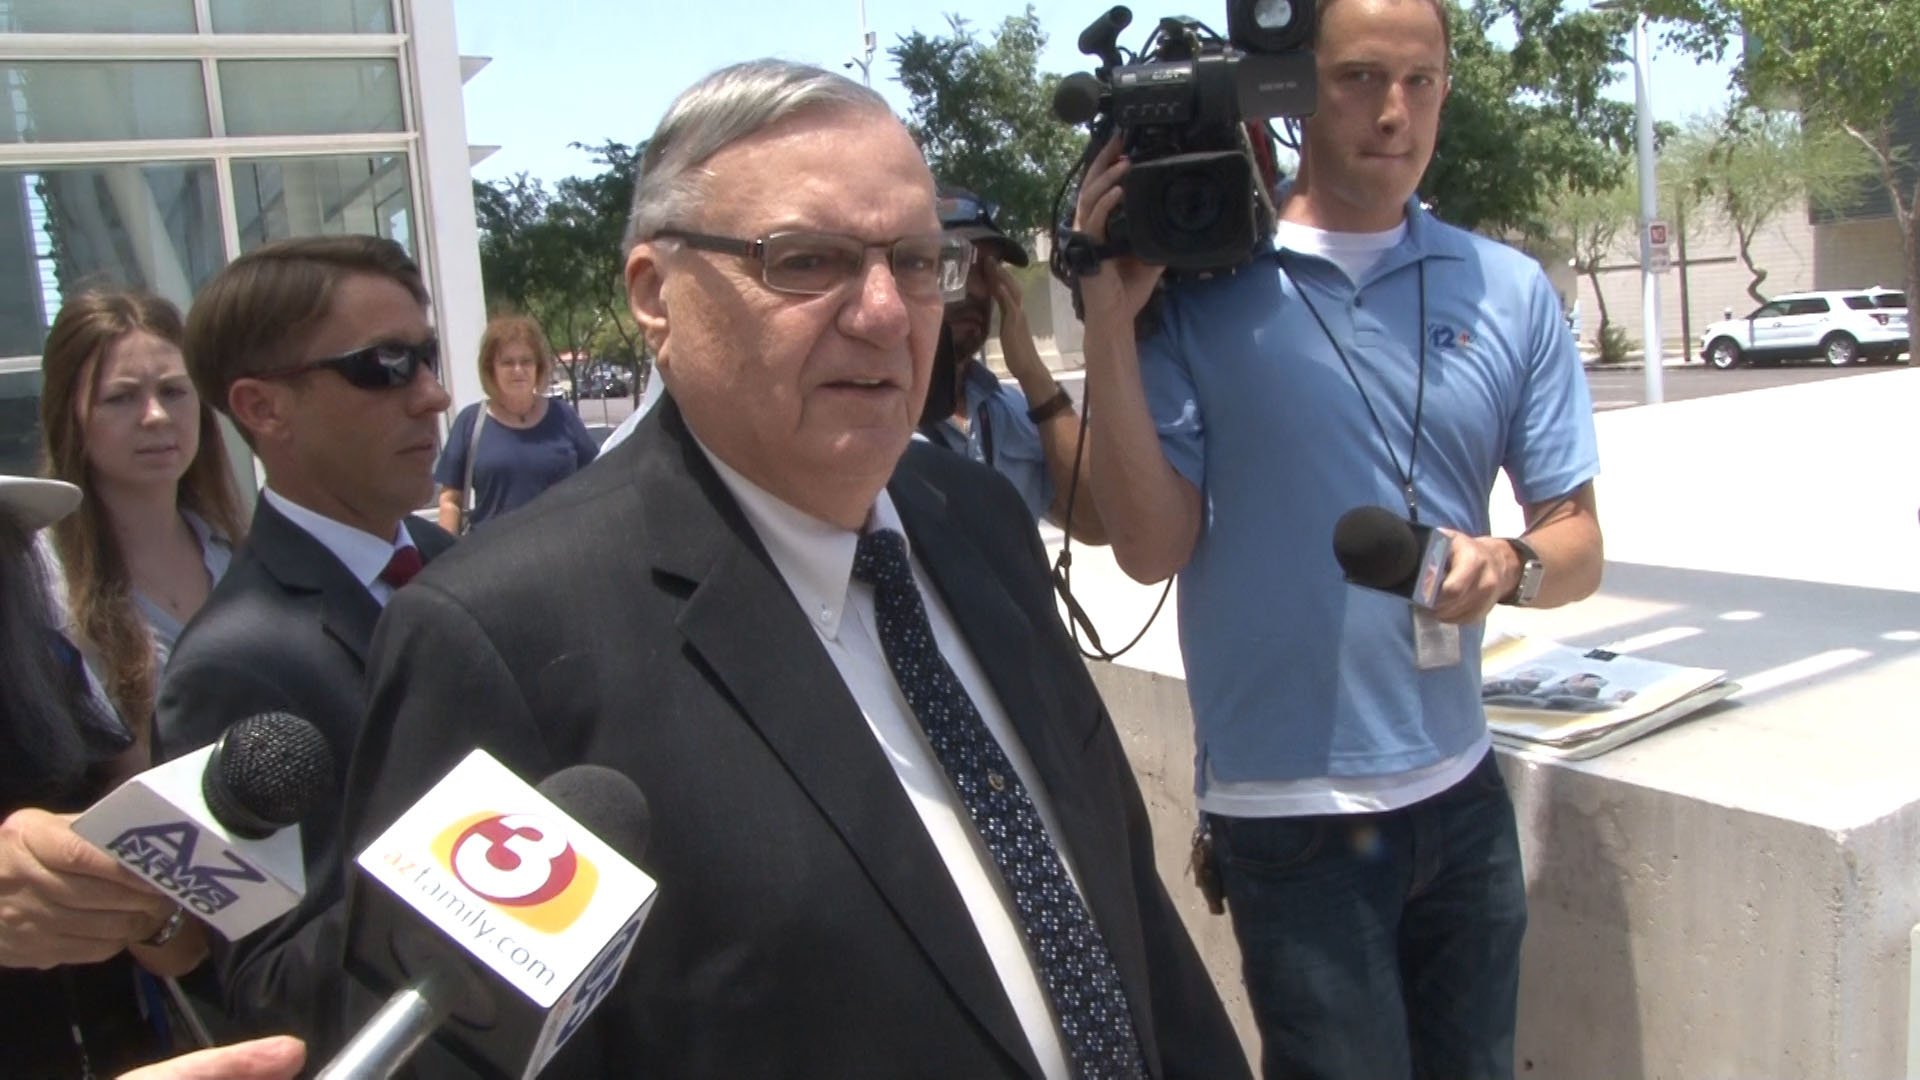 Former Maricopa County Sheriff Joe Arpaio declined to say whether he would take the witness stand during his criminal contempt trial. (Source: Tyler Fingert/Cronkite News)